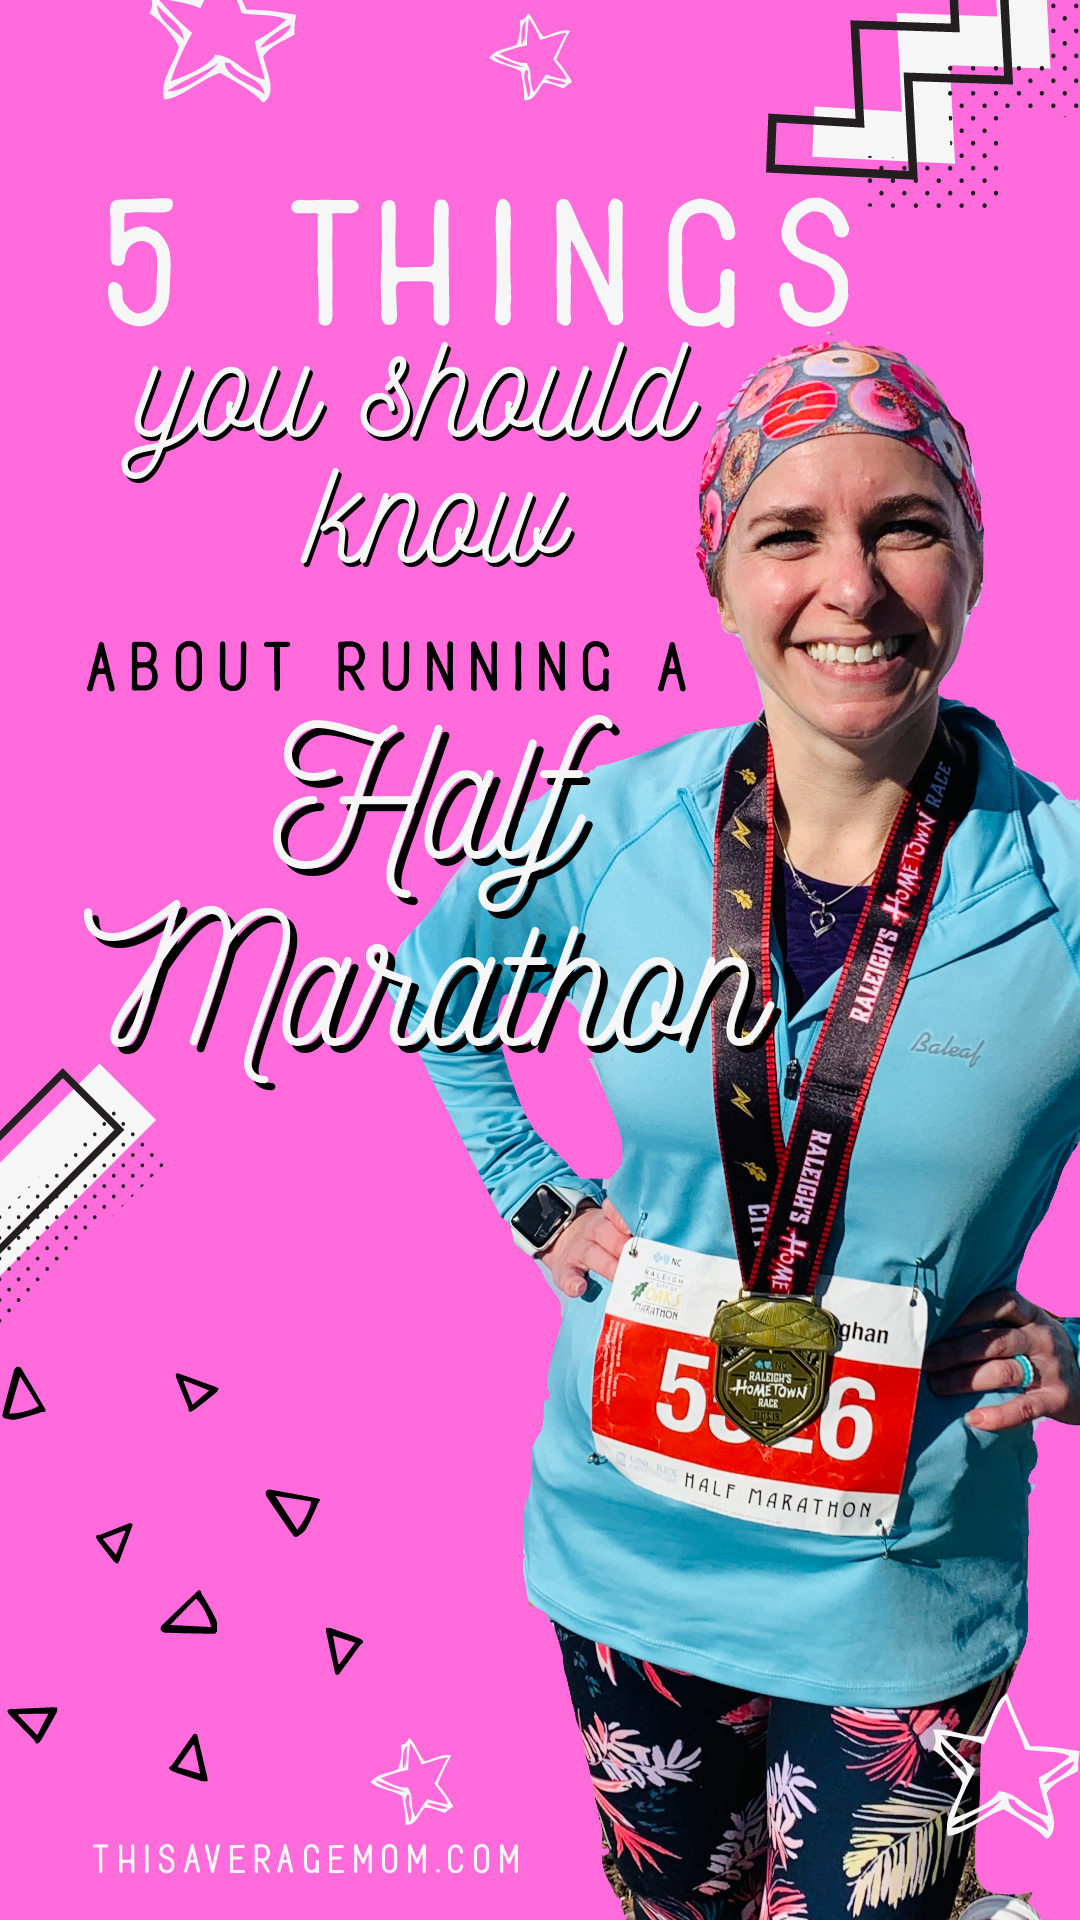 Ever thought about running a half marathon? Those 13.1 miles can seem pretty daunting, but less so if you know what to expect. Here's 5 things you should know about running a half marathon! #fitness